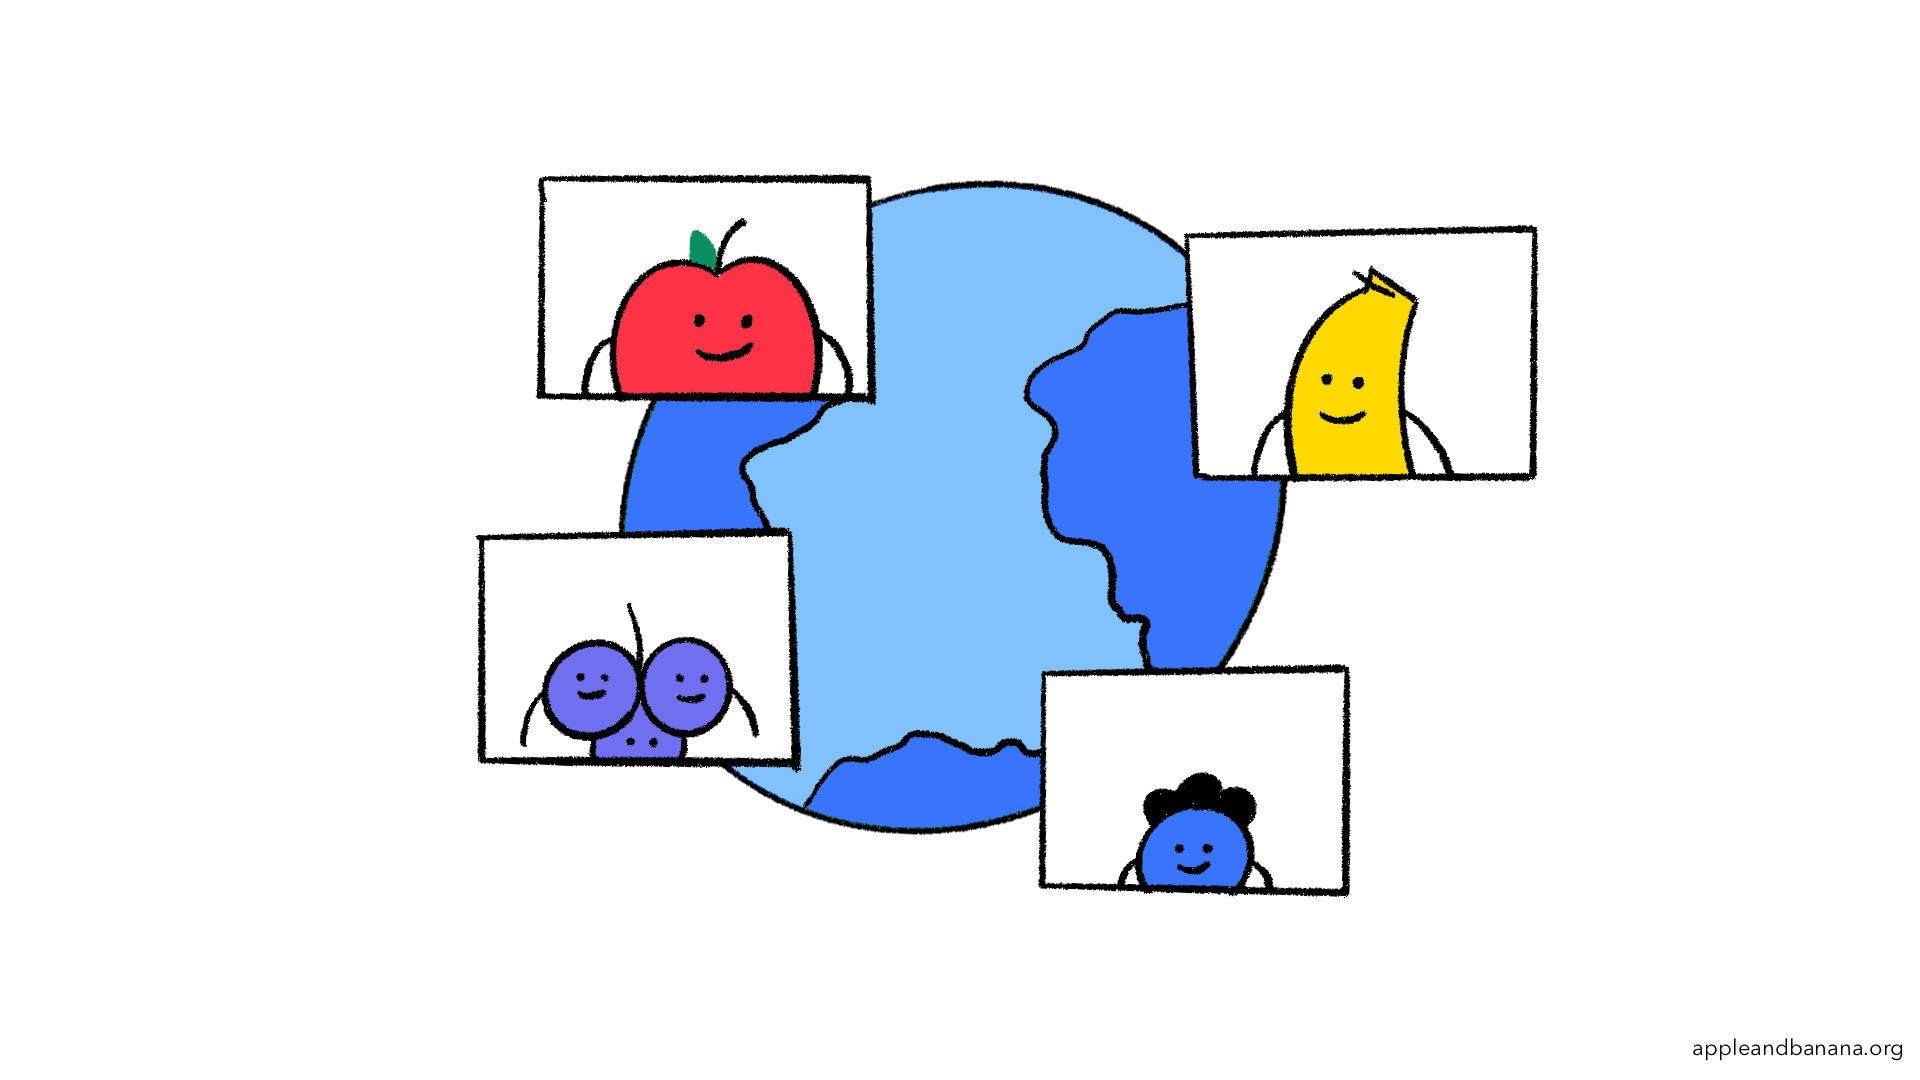 A map of the world with different fruits showcasing the global nature of our participants!